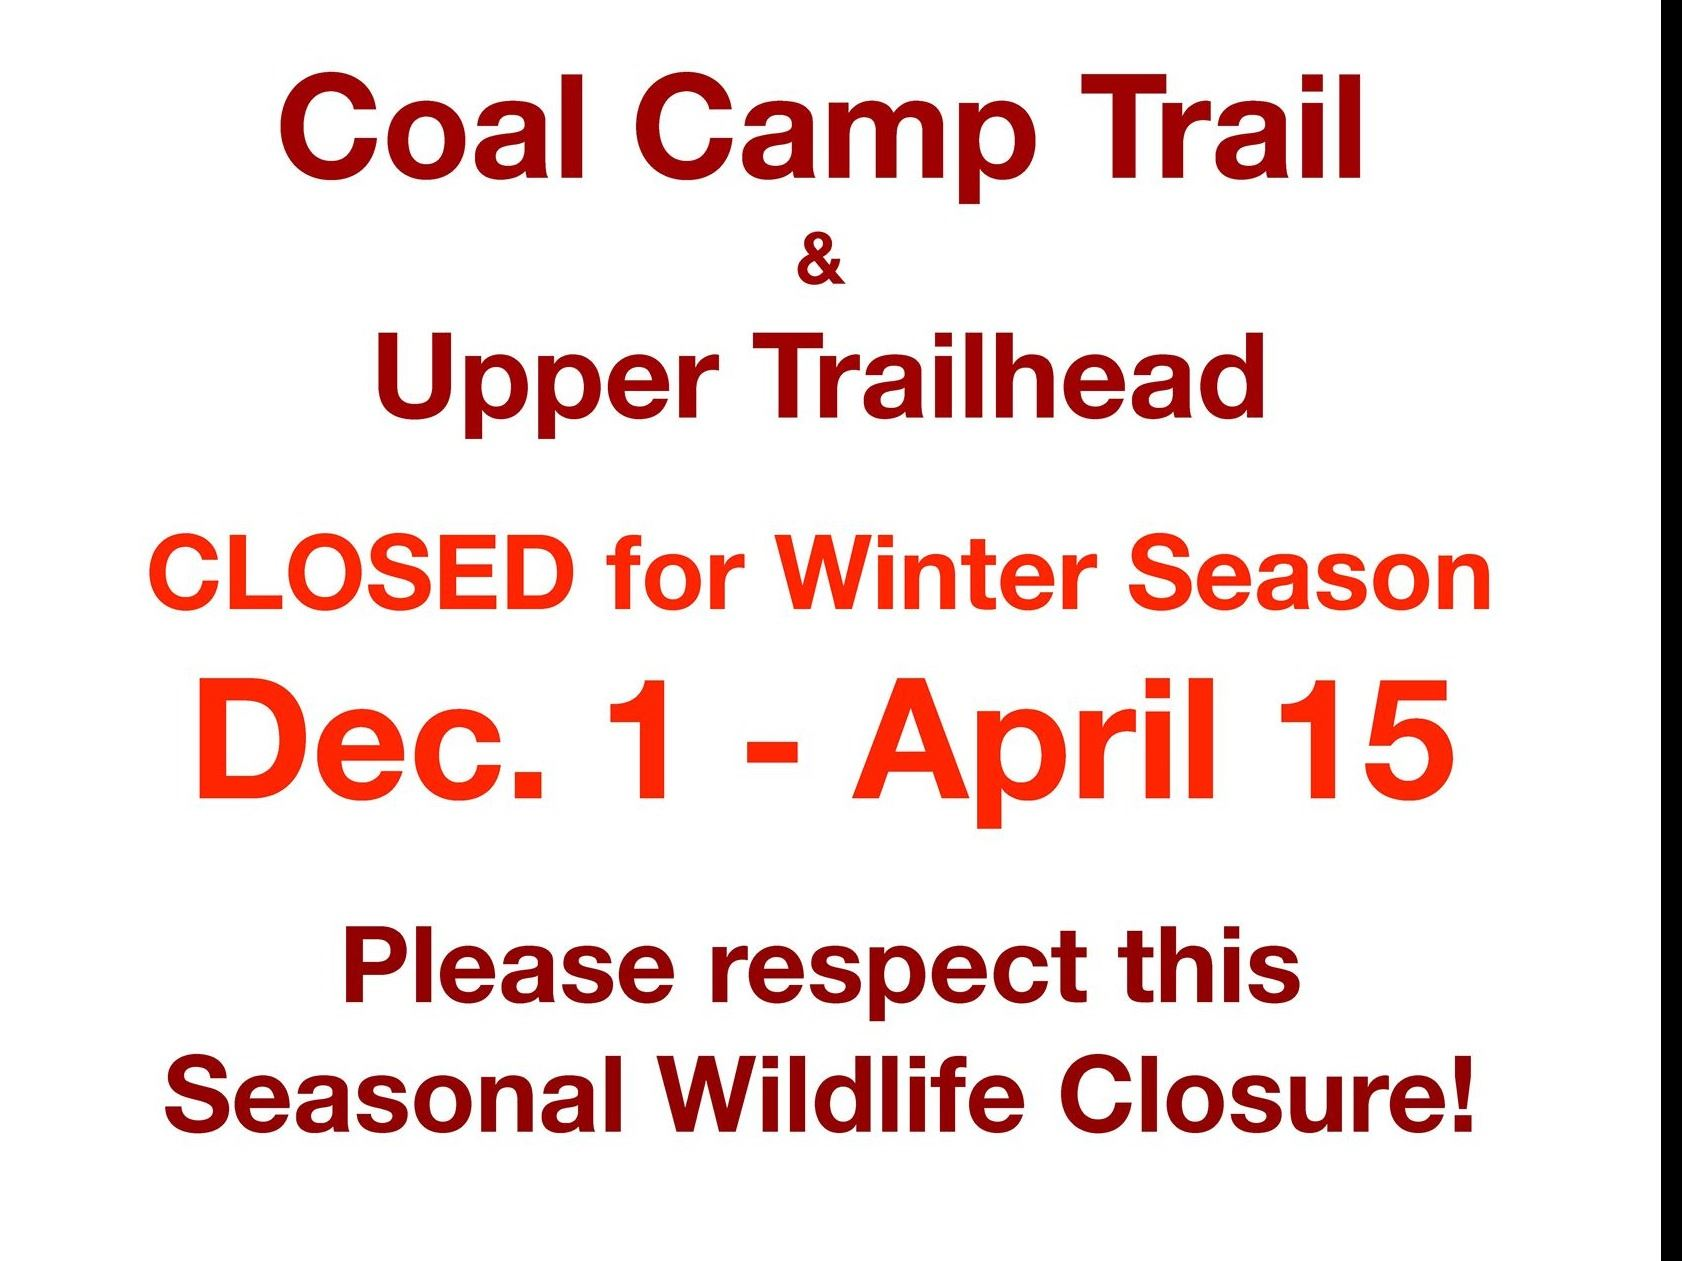 South Canyon Winter closure sign 11-26-18